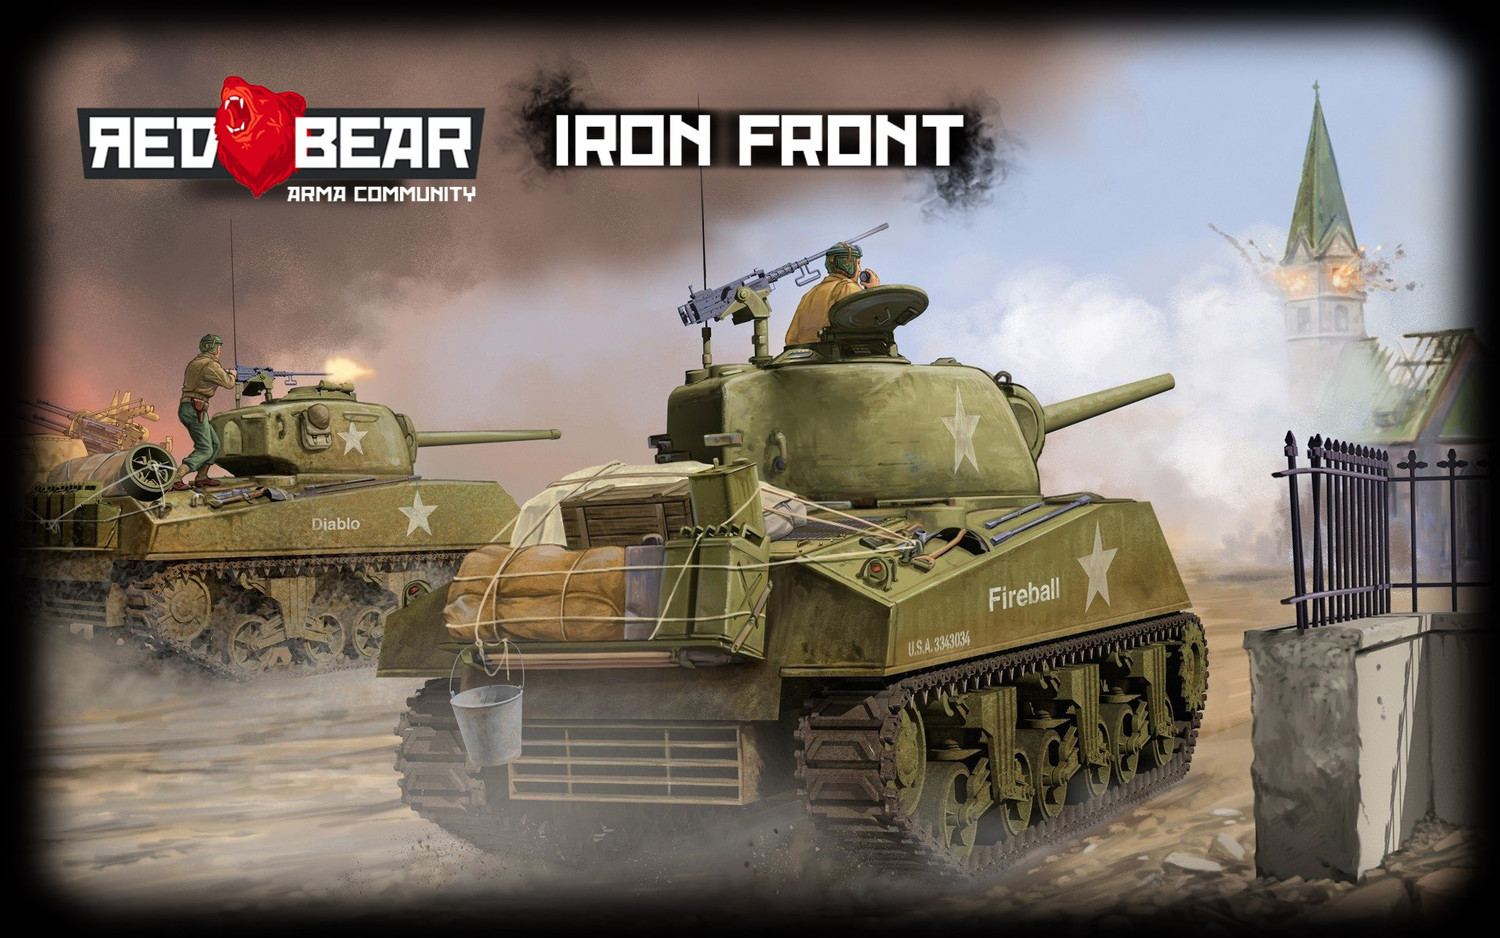 RED BEAR IRON FRONT ПО ВТОРНИКАМ